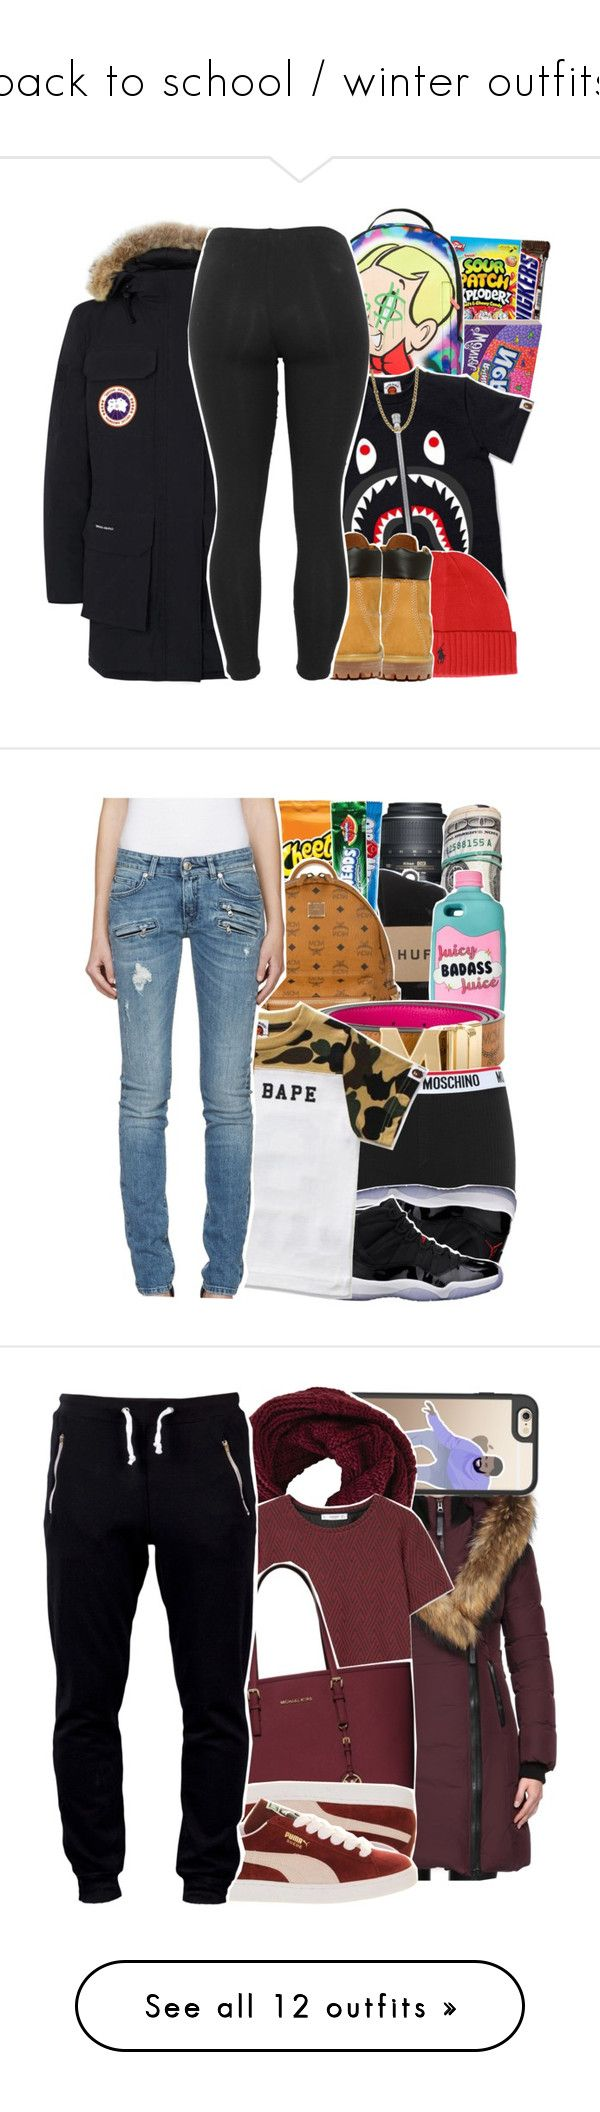 """""""back to school / winter outfits"""" by jas-karcash ❤ liked on Polyvore featuring Polo Ralph Lauren, Canada Goose, Timberland, Lauren Ralph Lauren, BackWithBape, Nikon, HUF, MCM, Moschino and Freaker"""